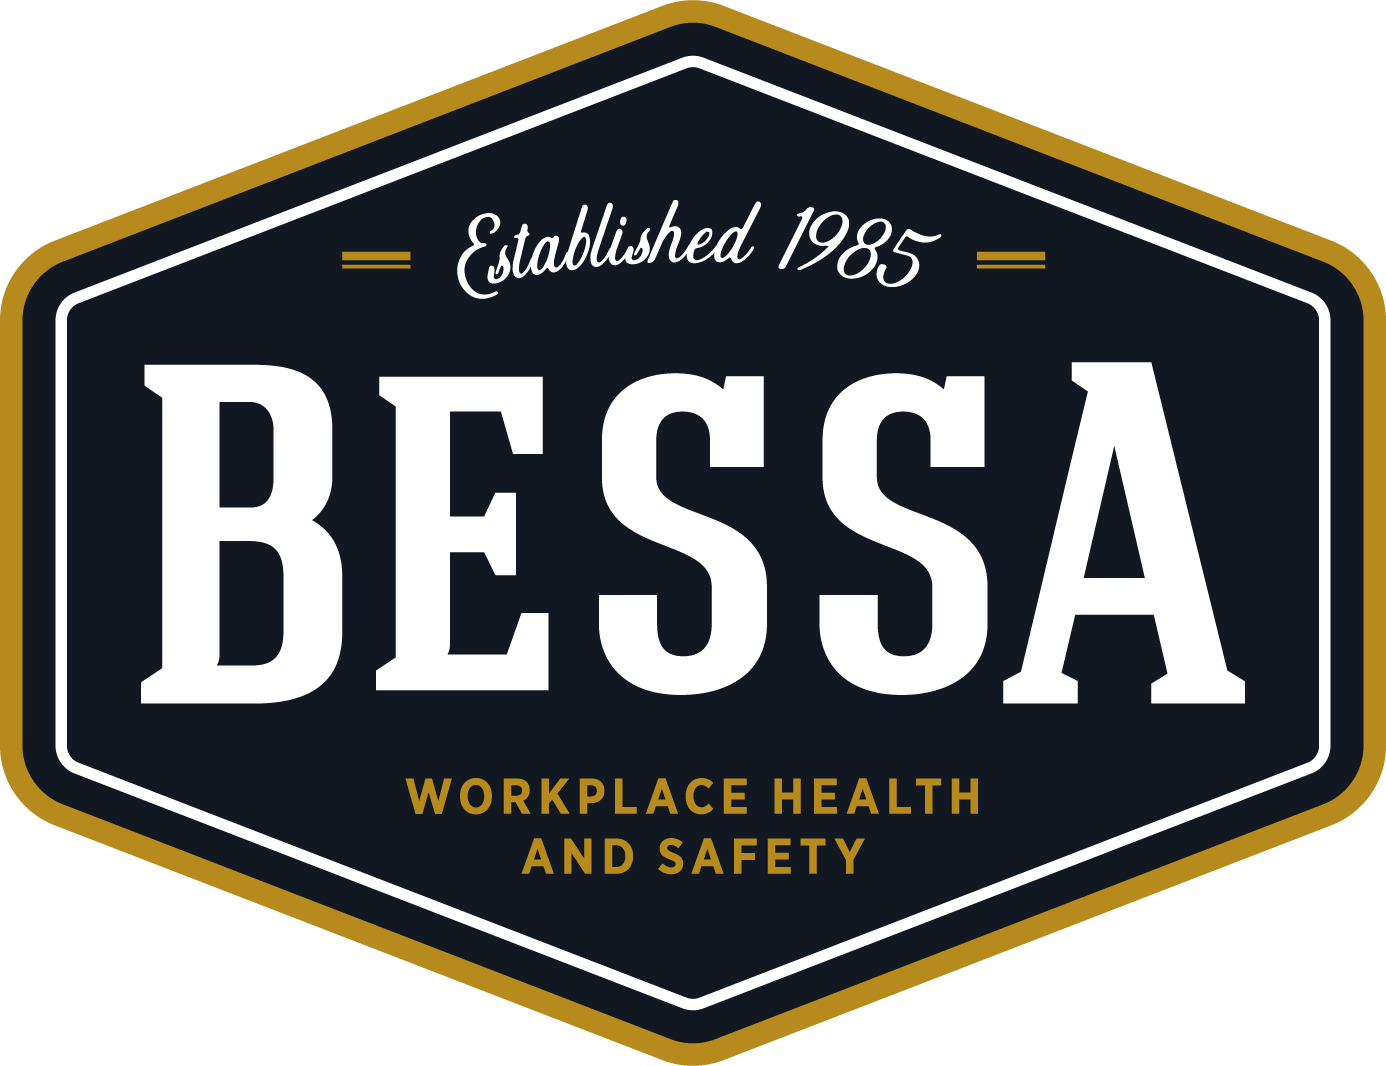 Bessa Workplace Health and Safety